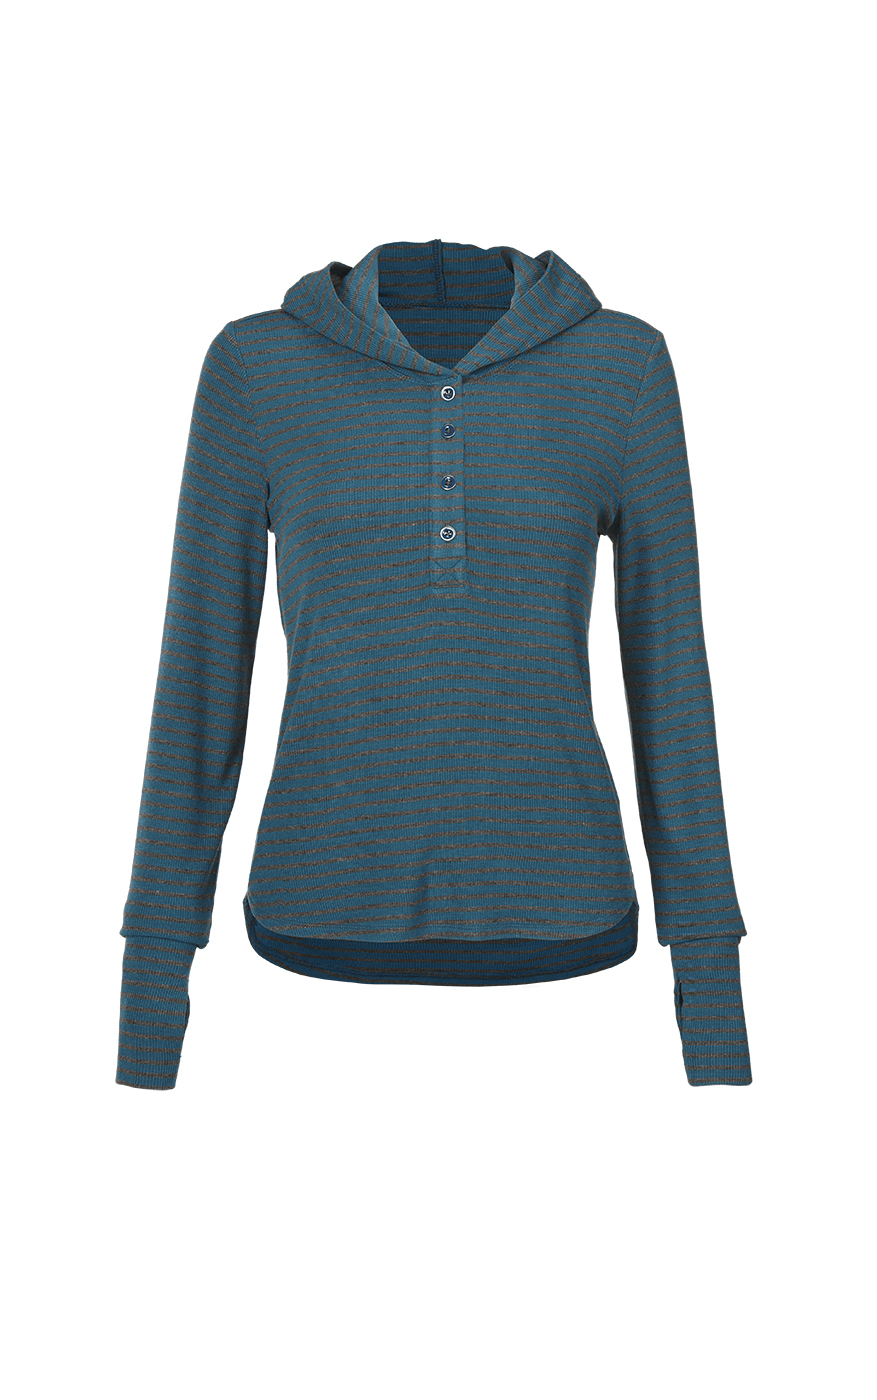 Riff Hoodie in Charcoal and Moroccan Blue Front